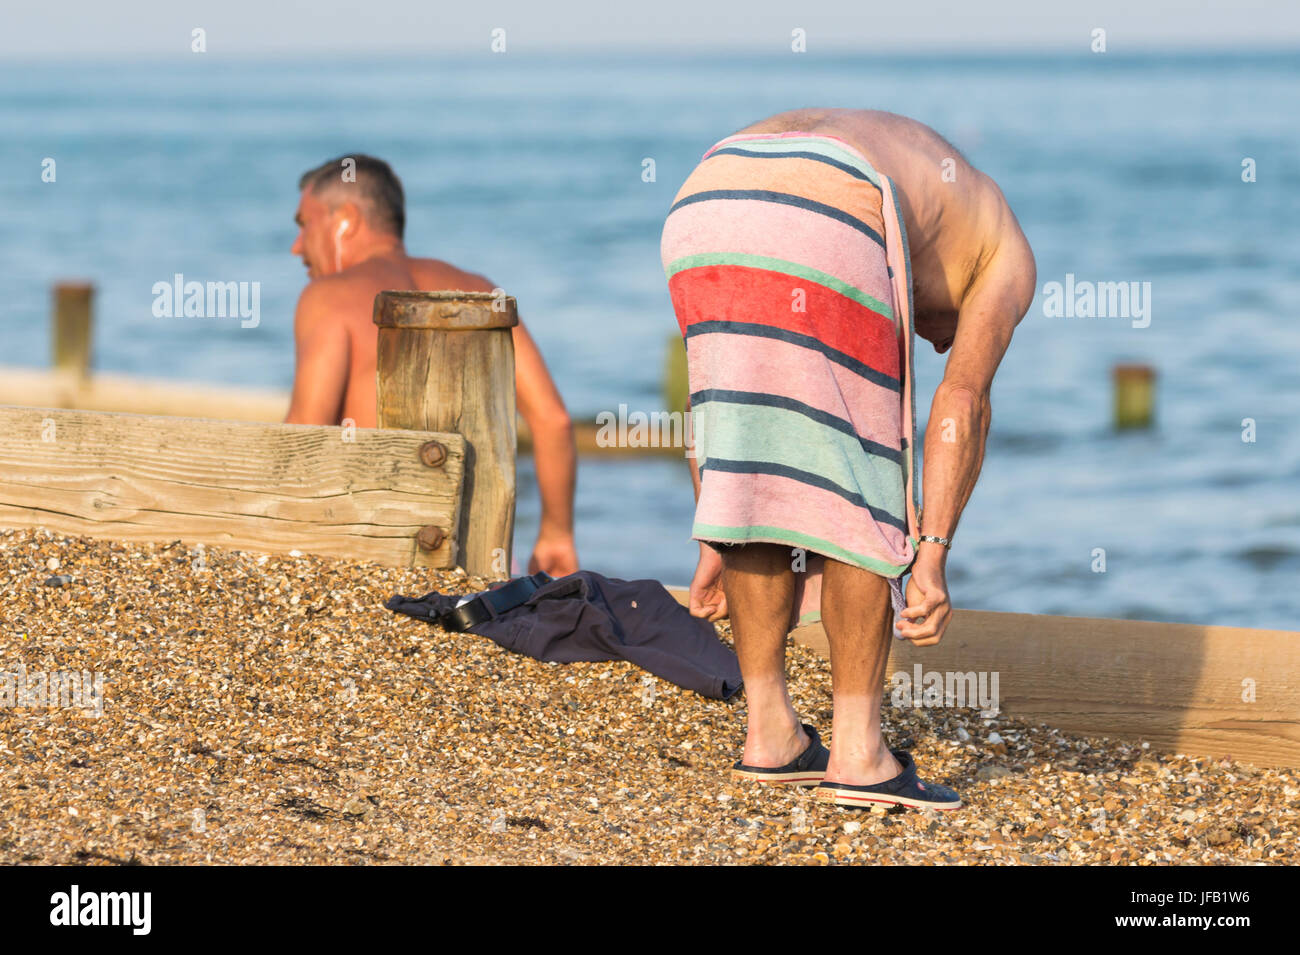 Man on a beach covered with a towel while changing. - Stock Image